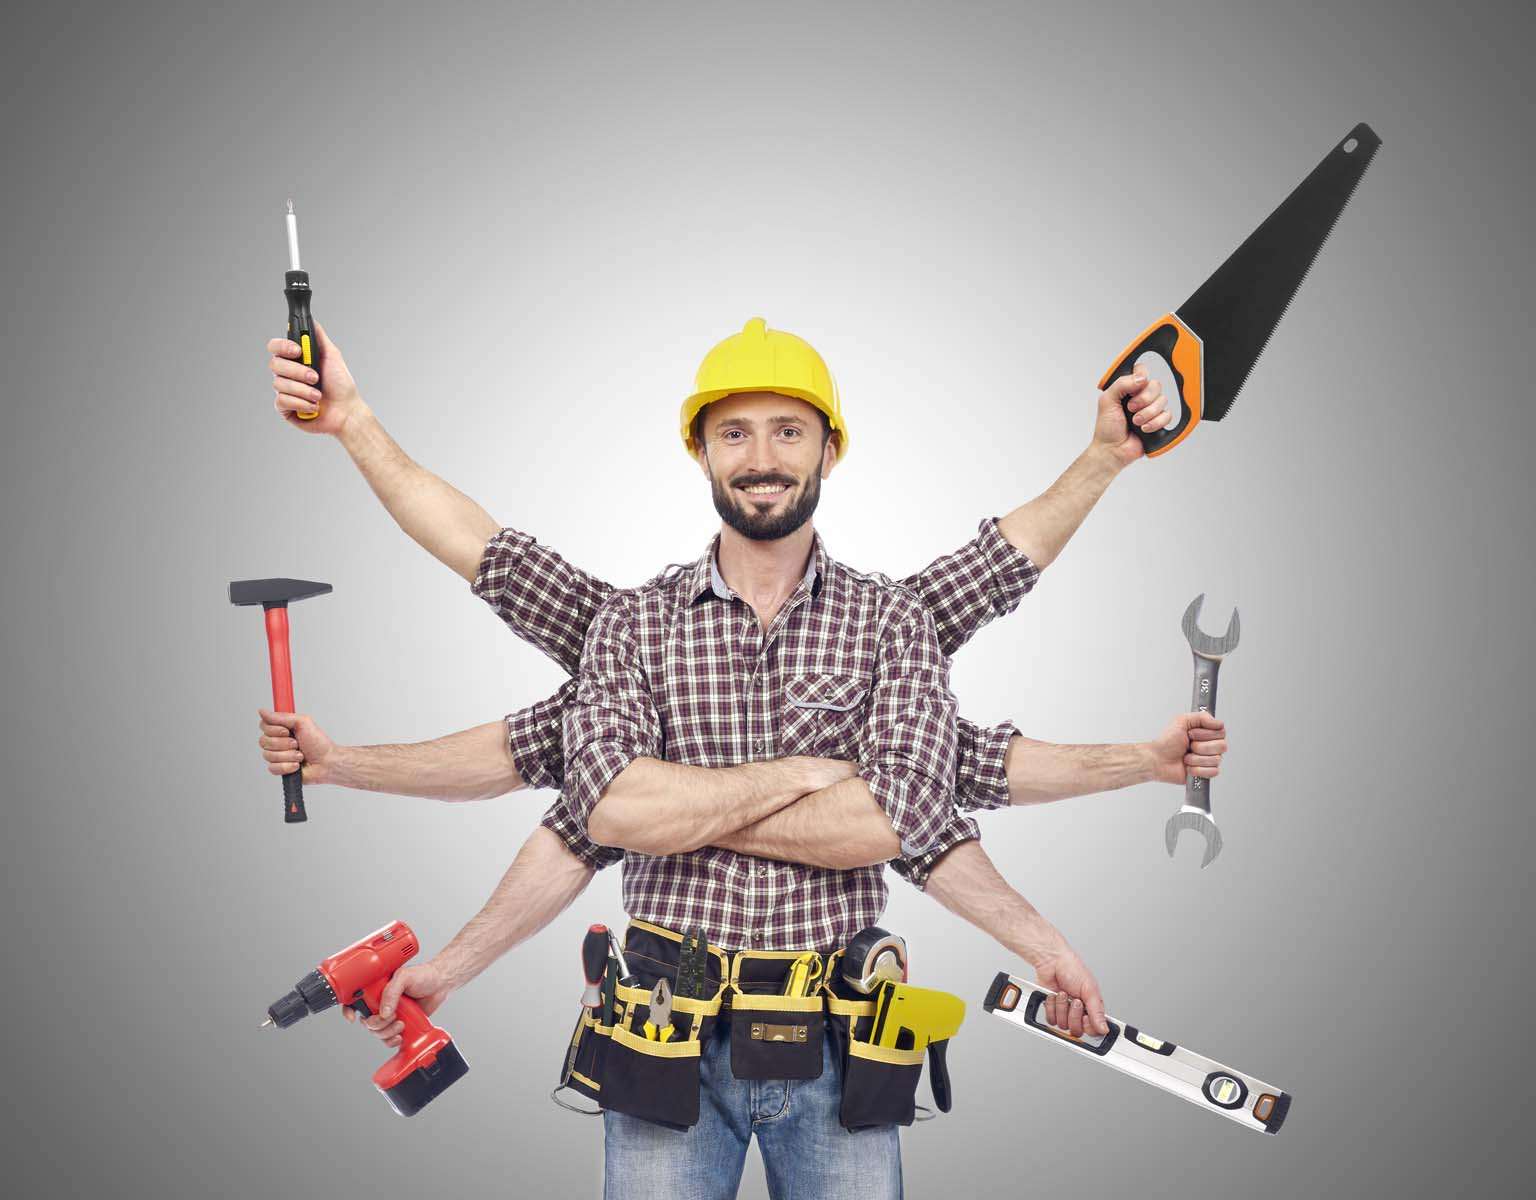 5 Steps In Finding A Contractor For A Christmas Project